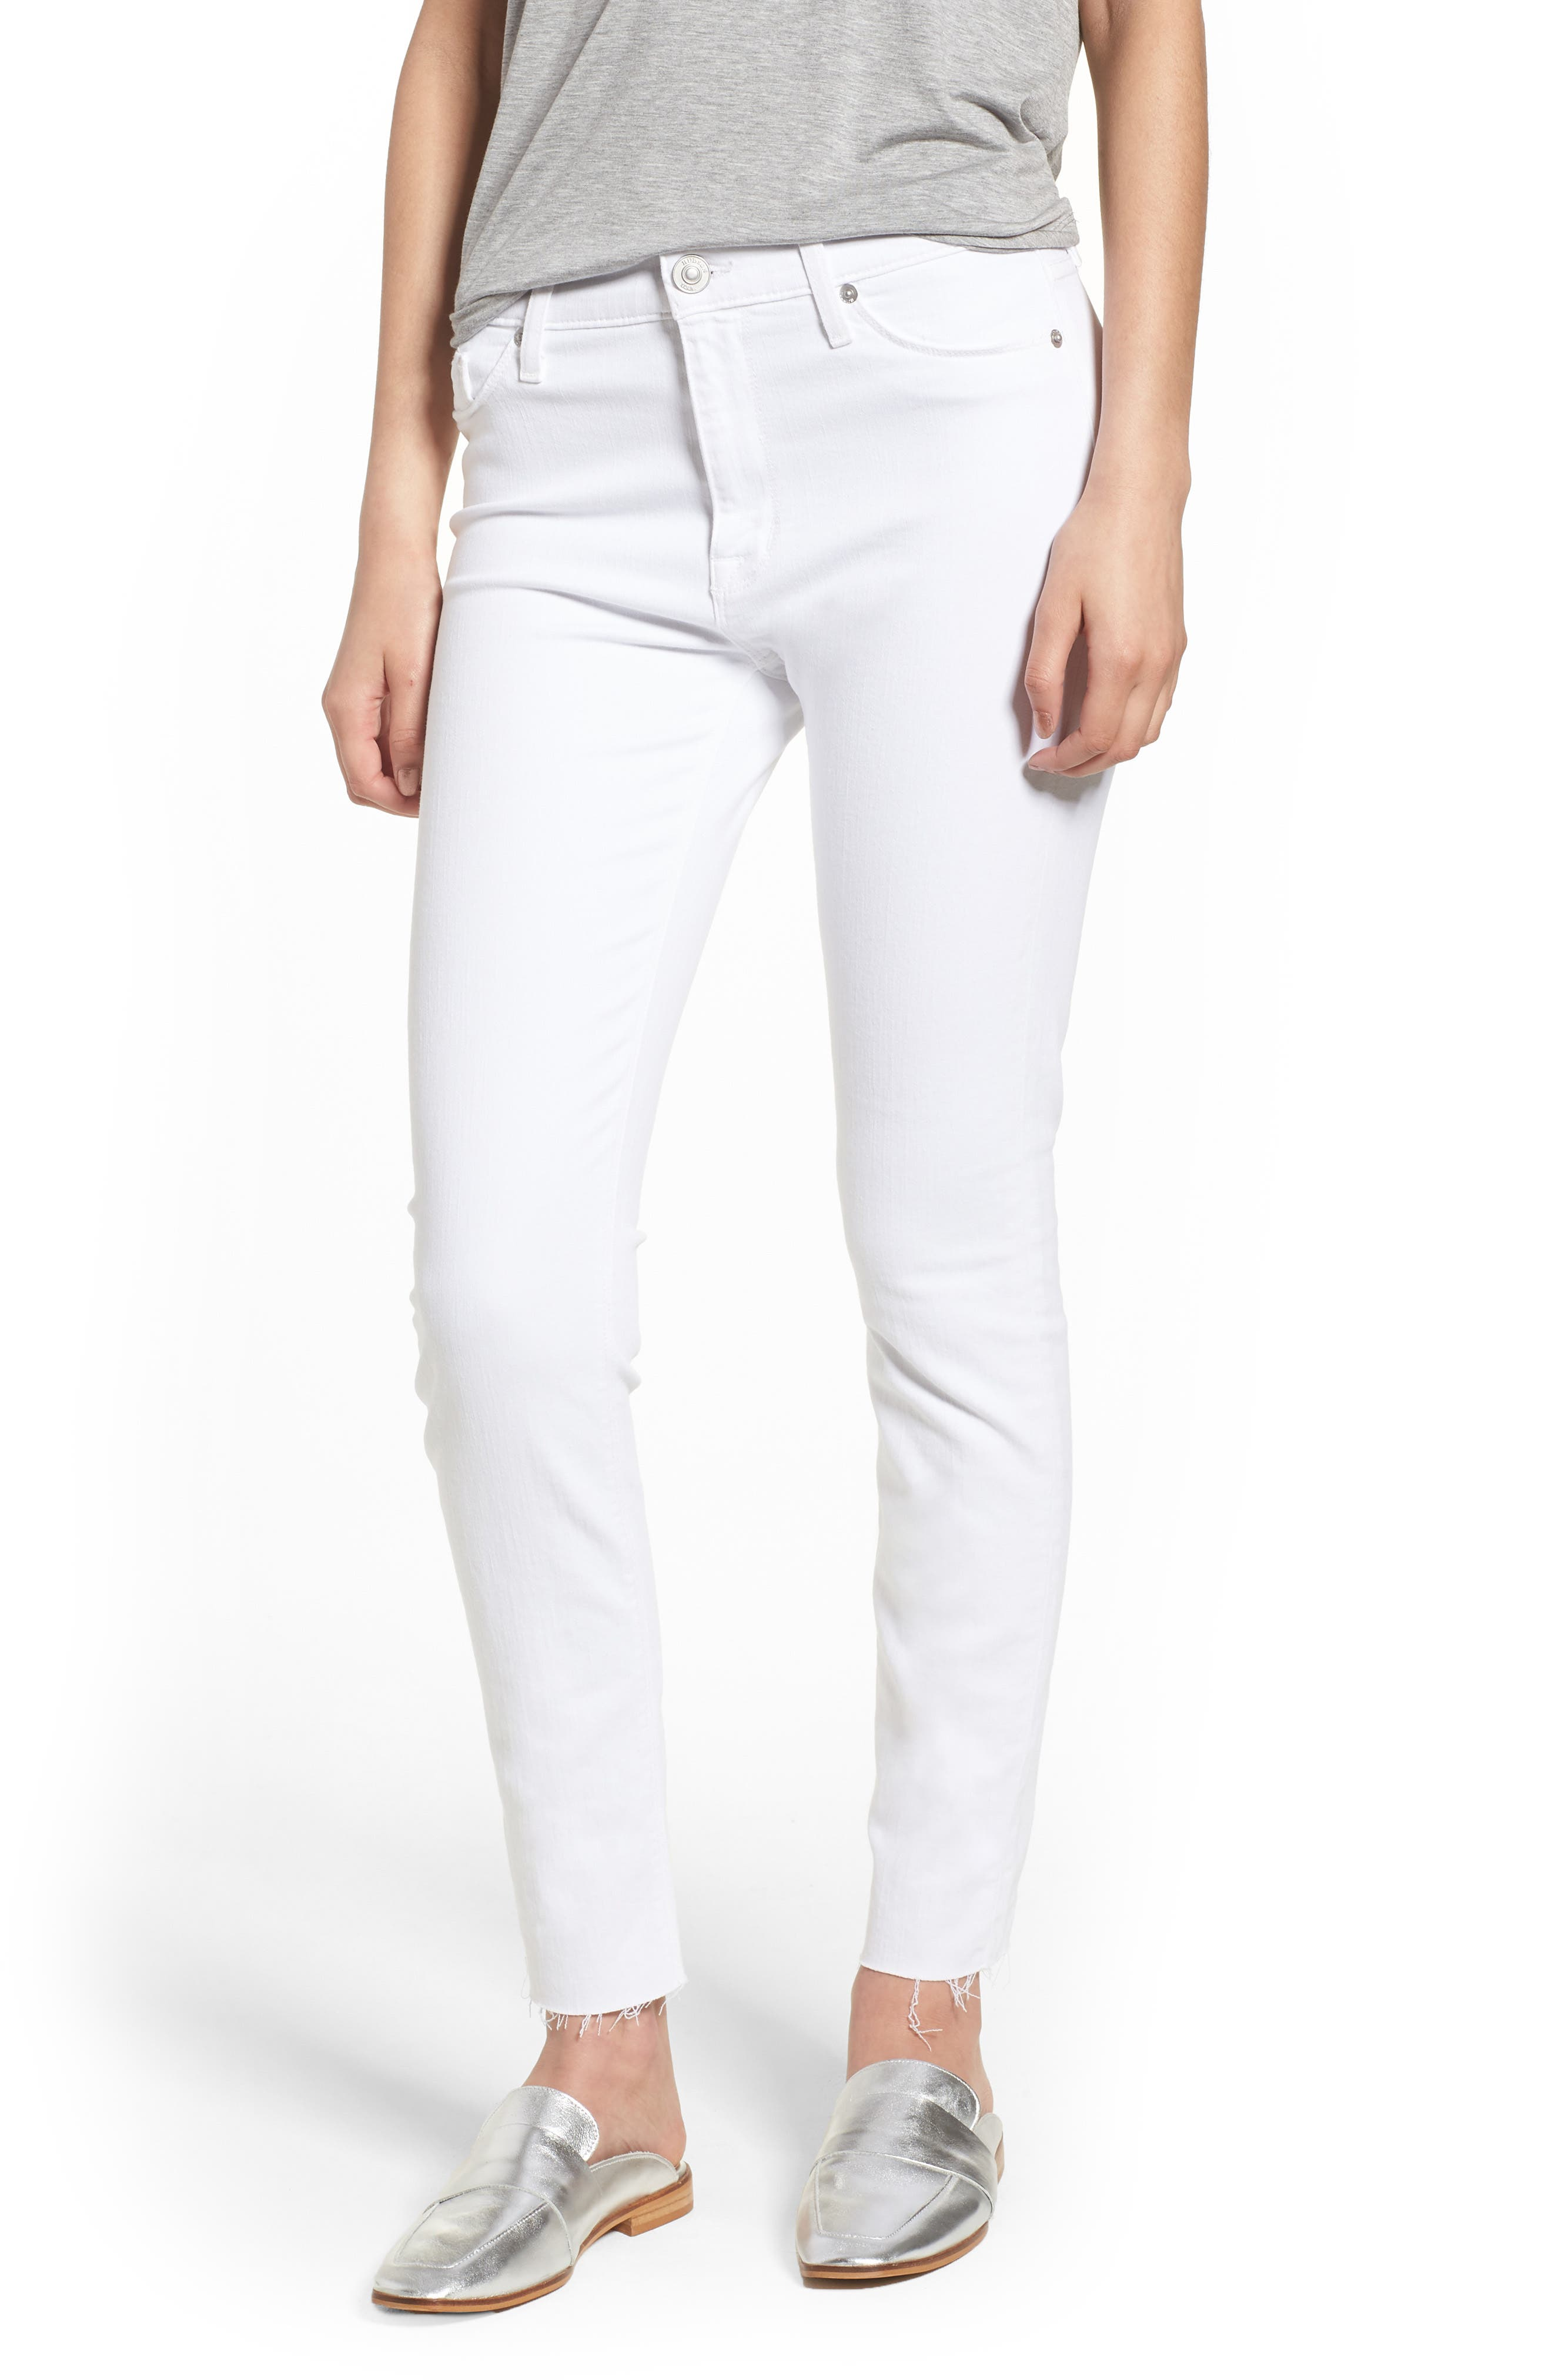 Barbara High Waist Raw Hem Ankle Skinny Jeans,                             Main thumbnail 1, color,                             Optical White